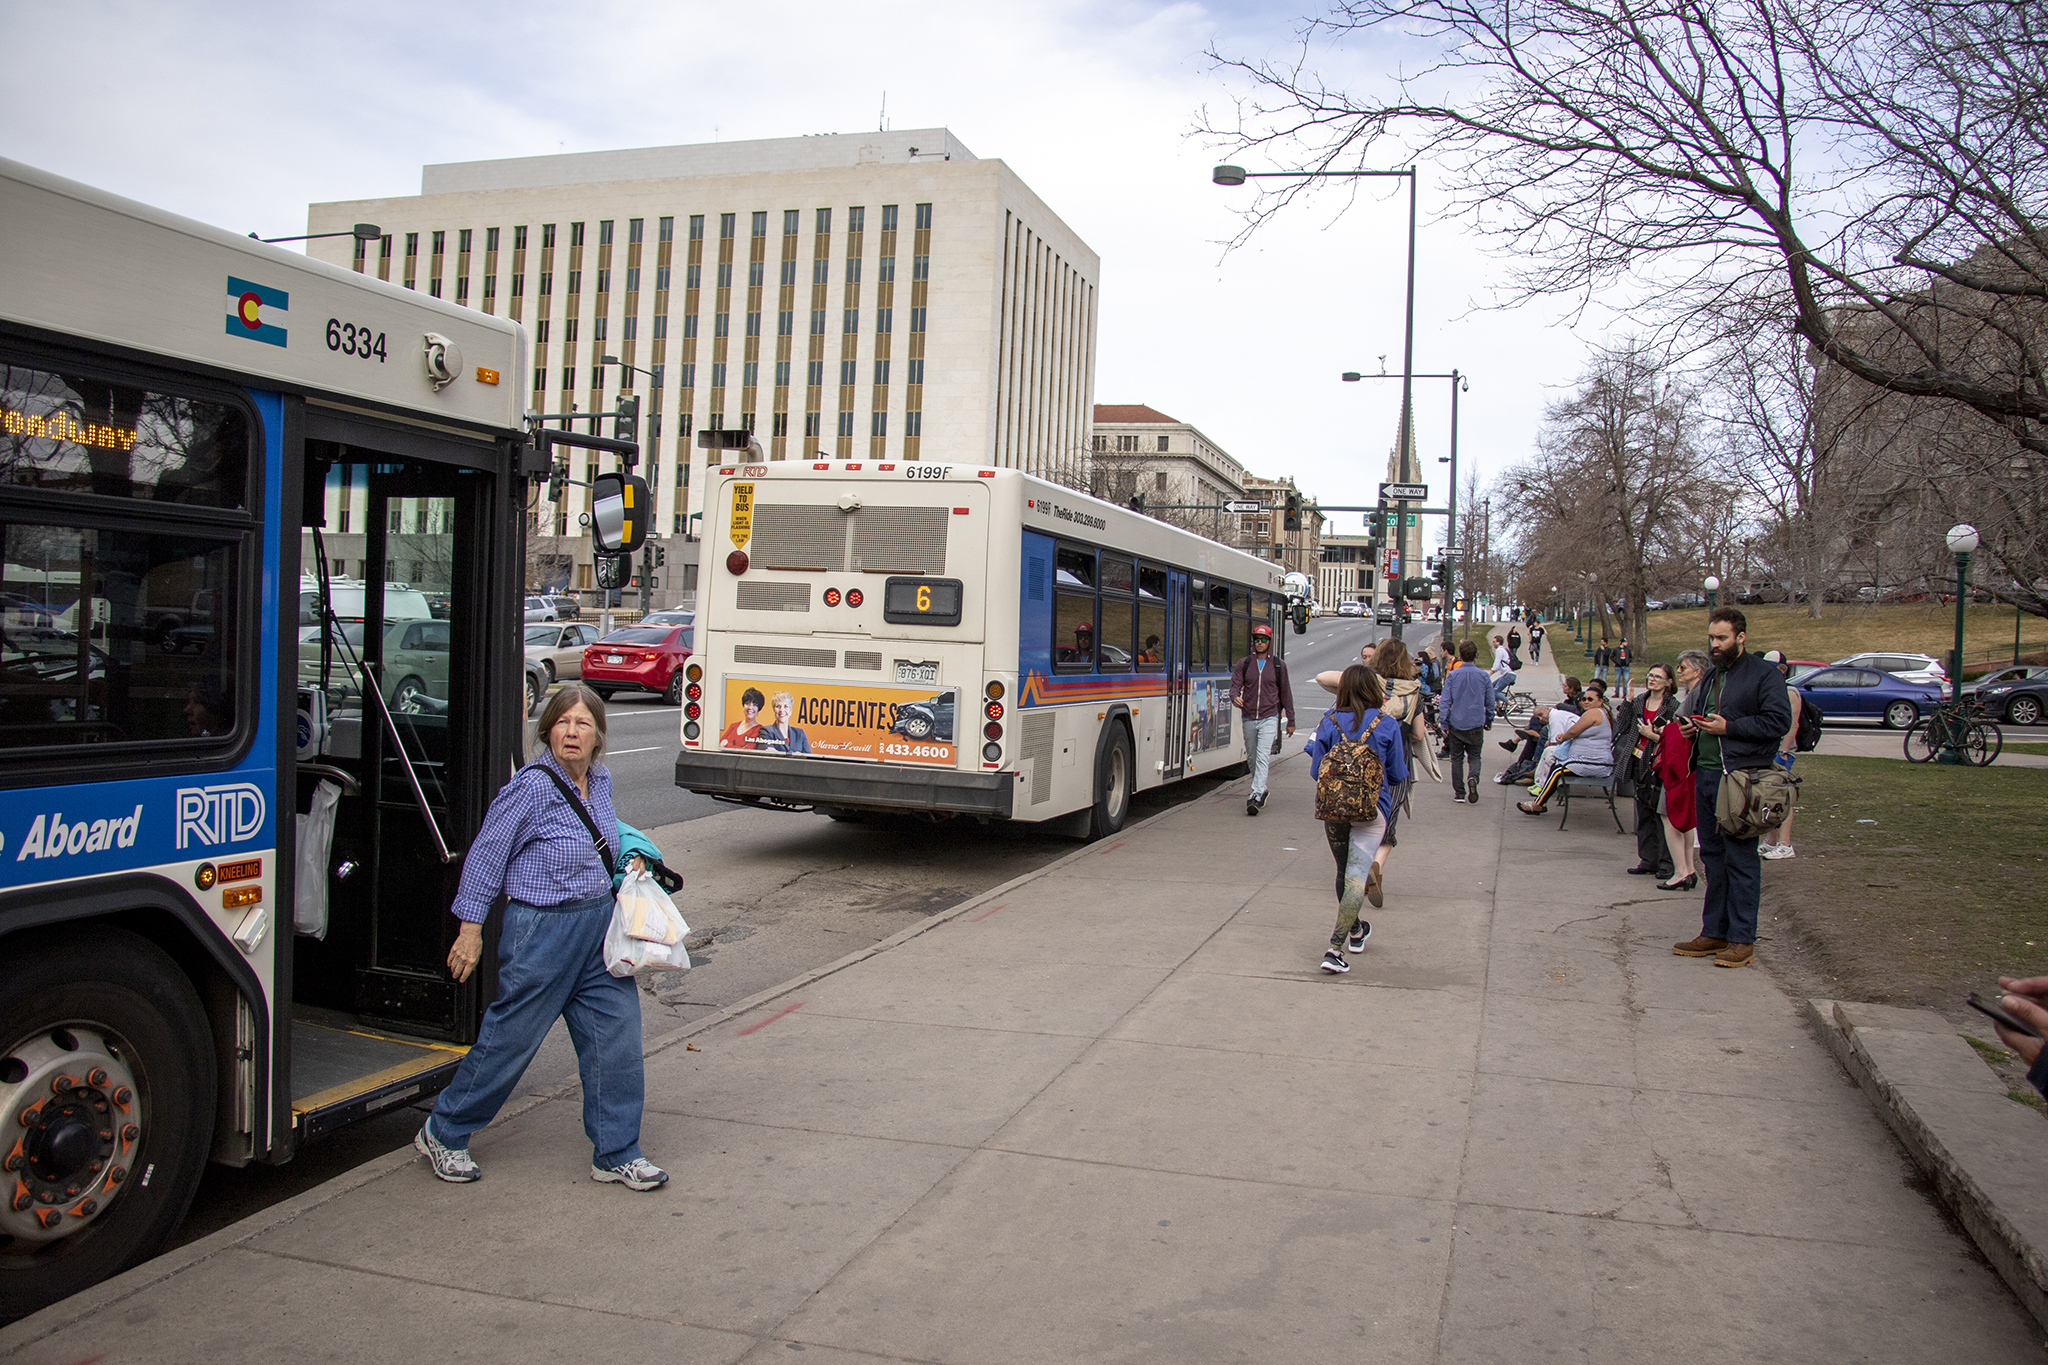 The RTD bus stop on Colfax Avenue at Broadway, March 28, 2019.